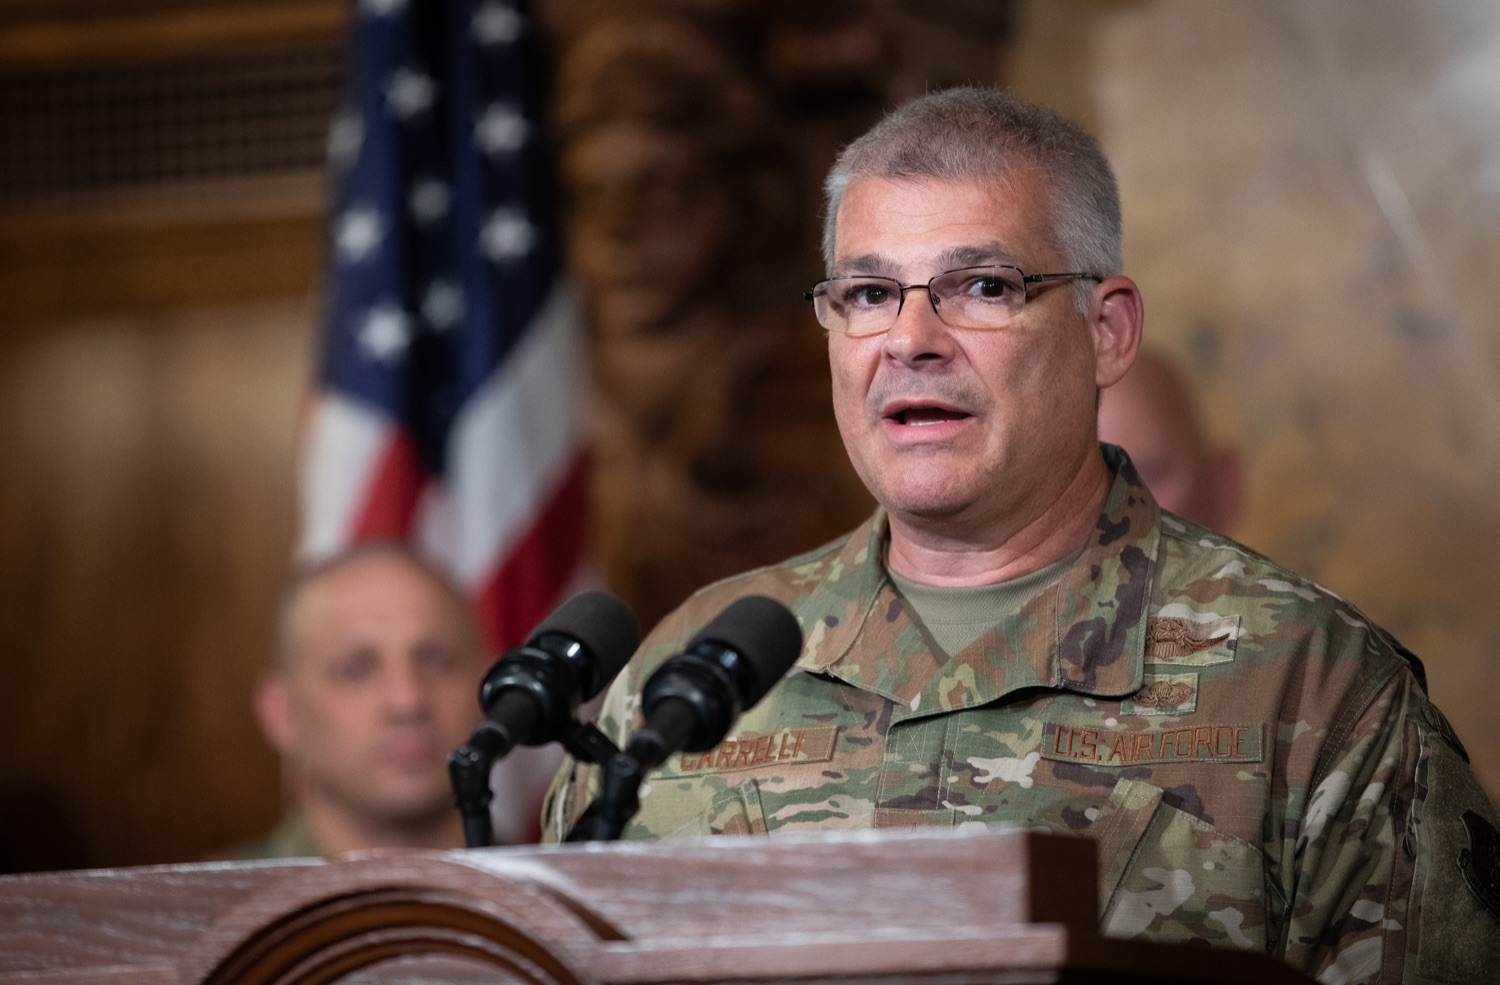 "<a href=""http://filesource.abacast.com/commonwealthofpa/photo/17423_gov_trip_recap_dz_004.jpg"" target=""_blank"">⇣ Download Photo<br></a>Harrisburg, PA  Adjutant General Maj. General Tony Carrelli about his recent visit to Lithuania and Poland. Governor Tom Wolf today highlighted the second half of his trip abroad, including visiting with more than 500 PA National Guard (PNG) troops in Poland, and honoring the Tree of Life synagogue victims at the Auschwitz-Birkenau Memorial. Tuesday, September 17, 2019"